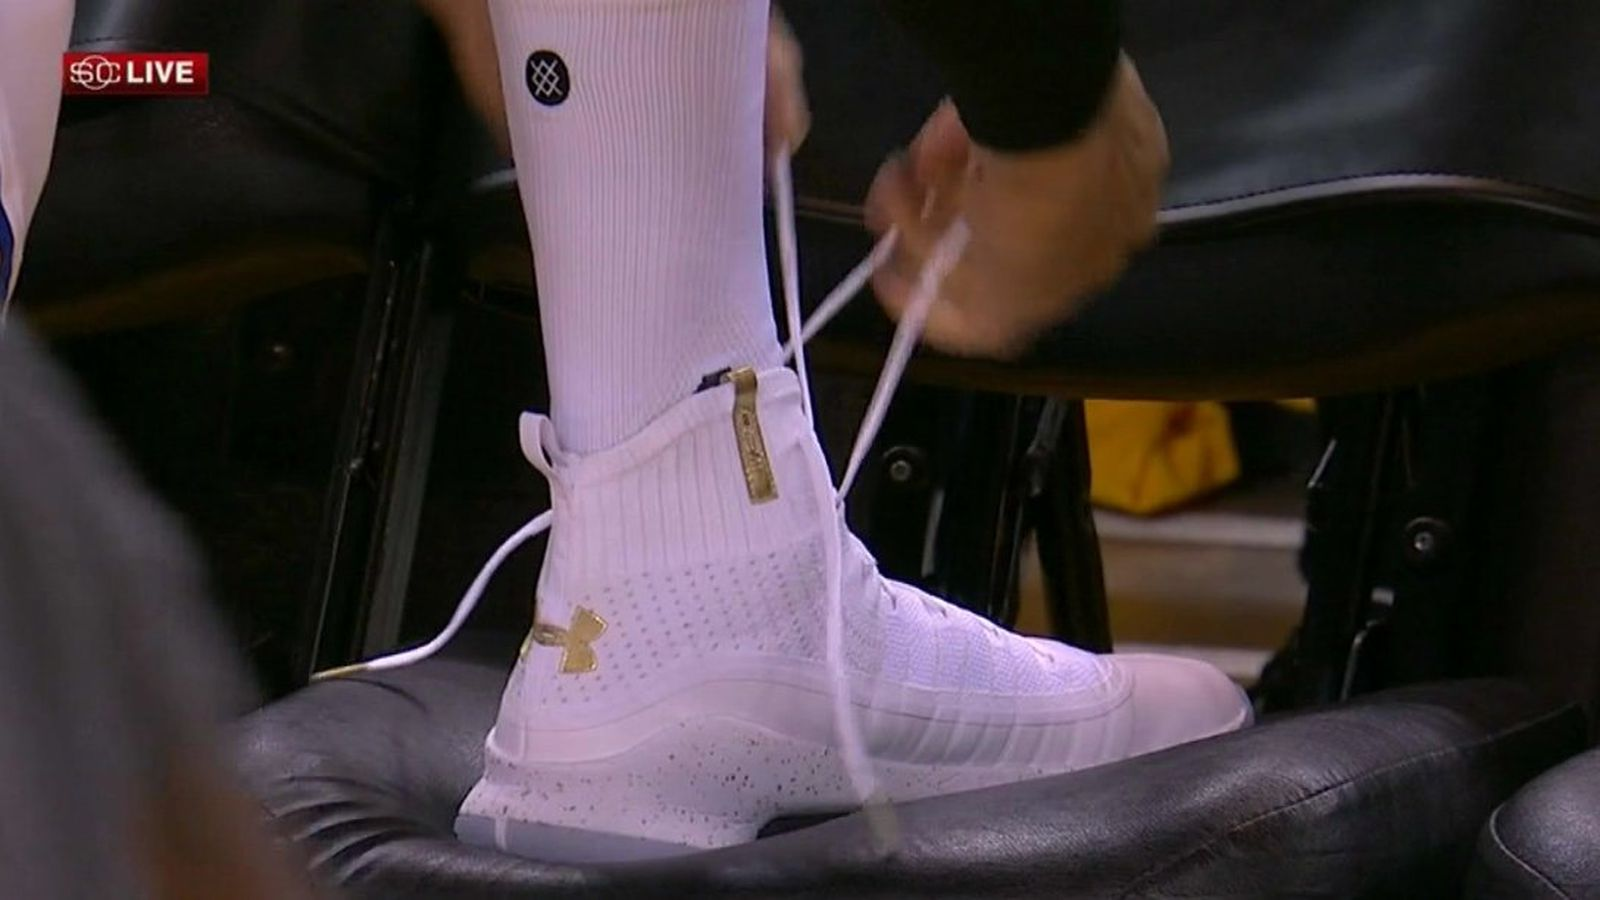 Stephen Curry sports his latest shoes during Game 1 of the NBA Finals ... and they're not bad ...